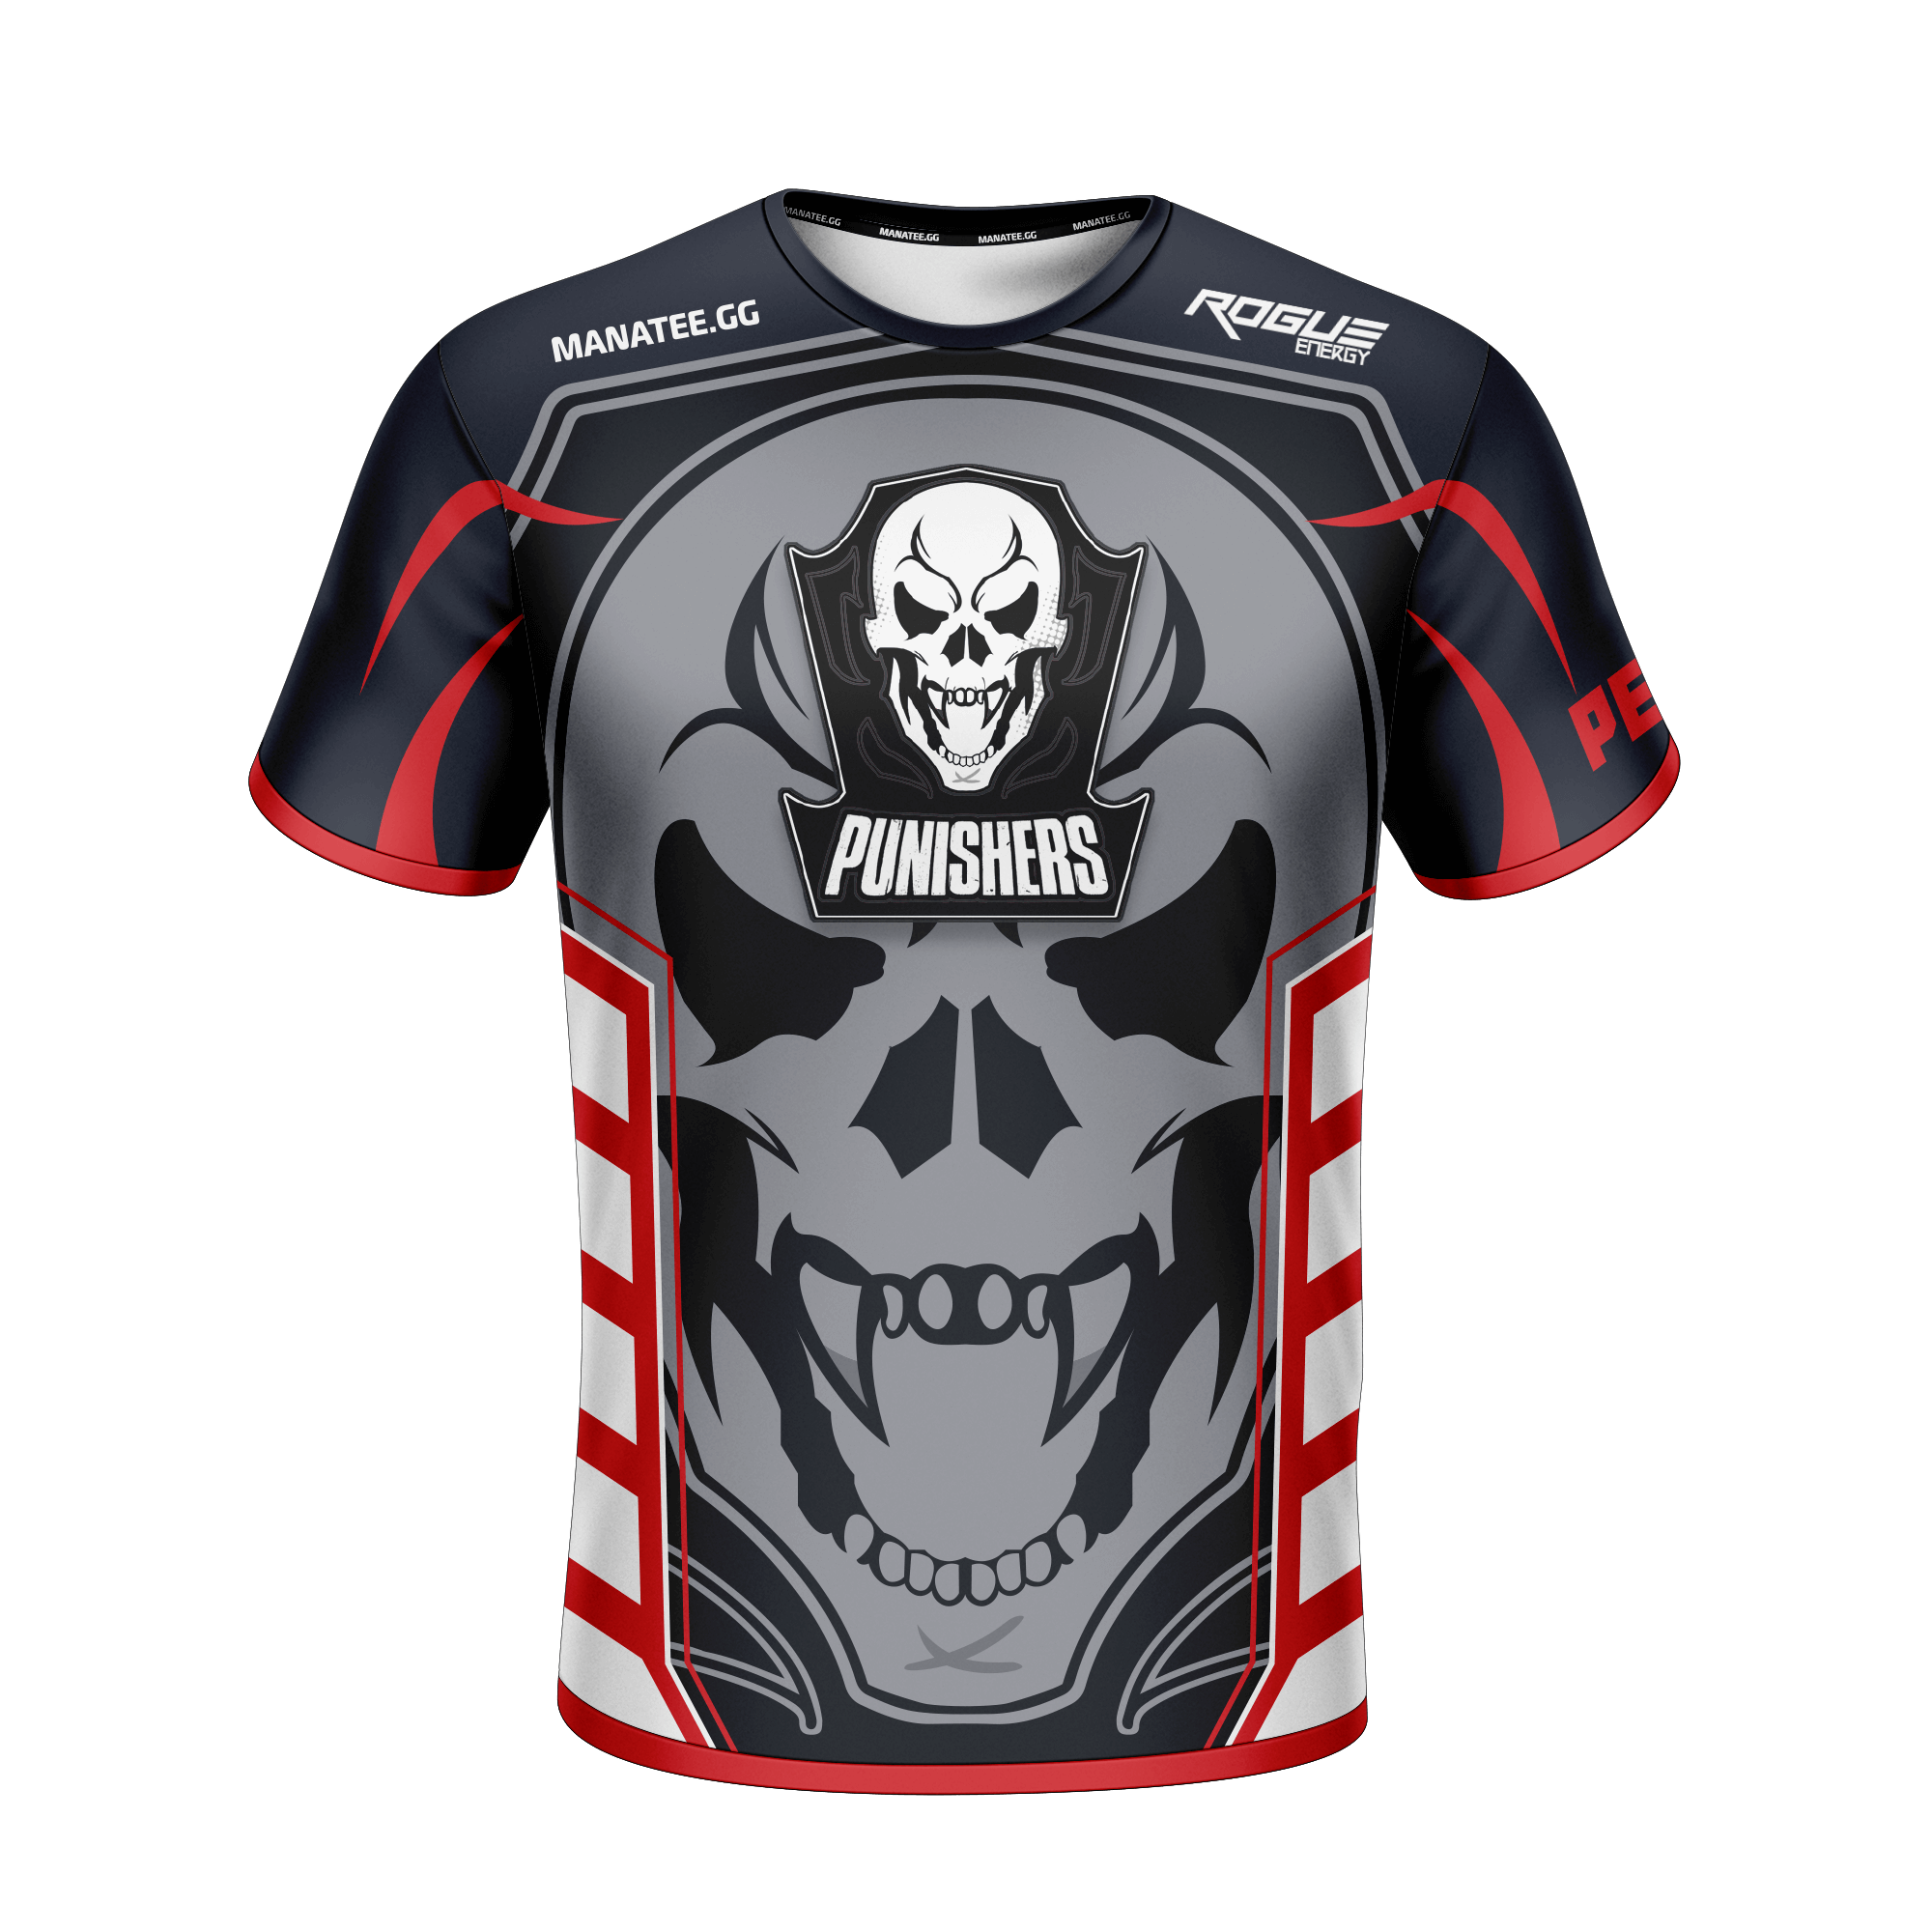 Punisher Esports jersey